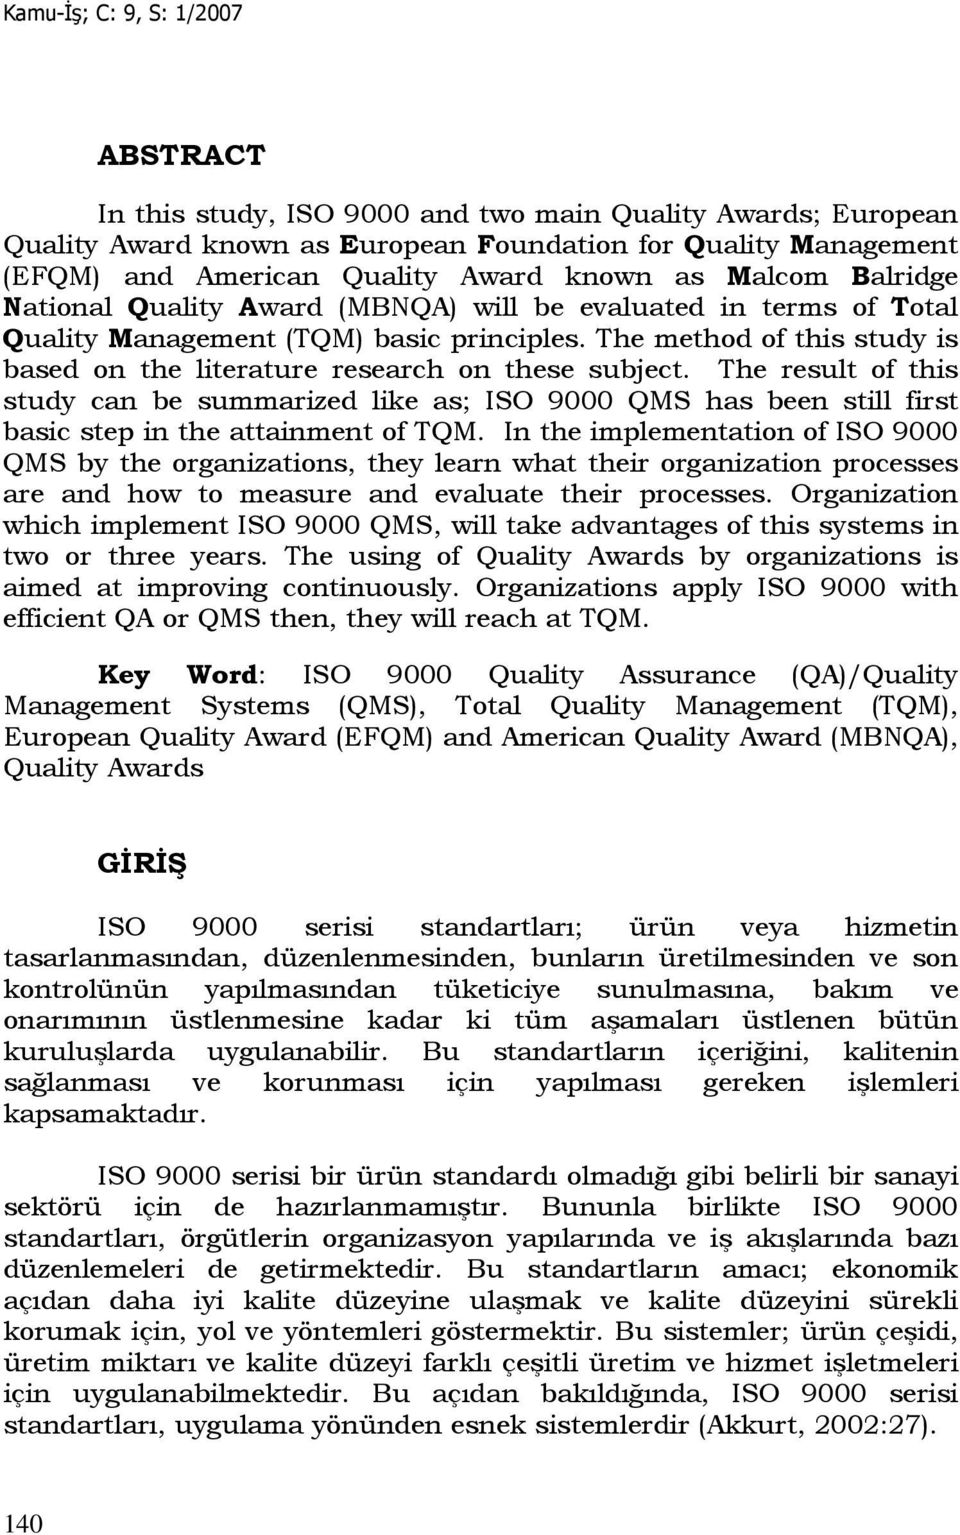 The result of this study can be summarized like as; ISO 9000 QMS has been still first basic step in the attainment of TQM.